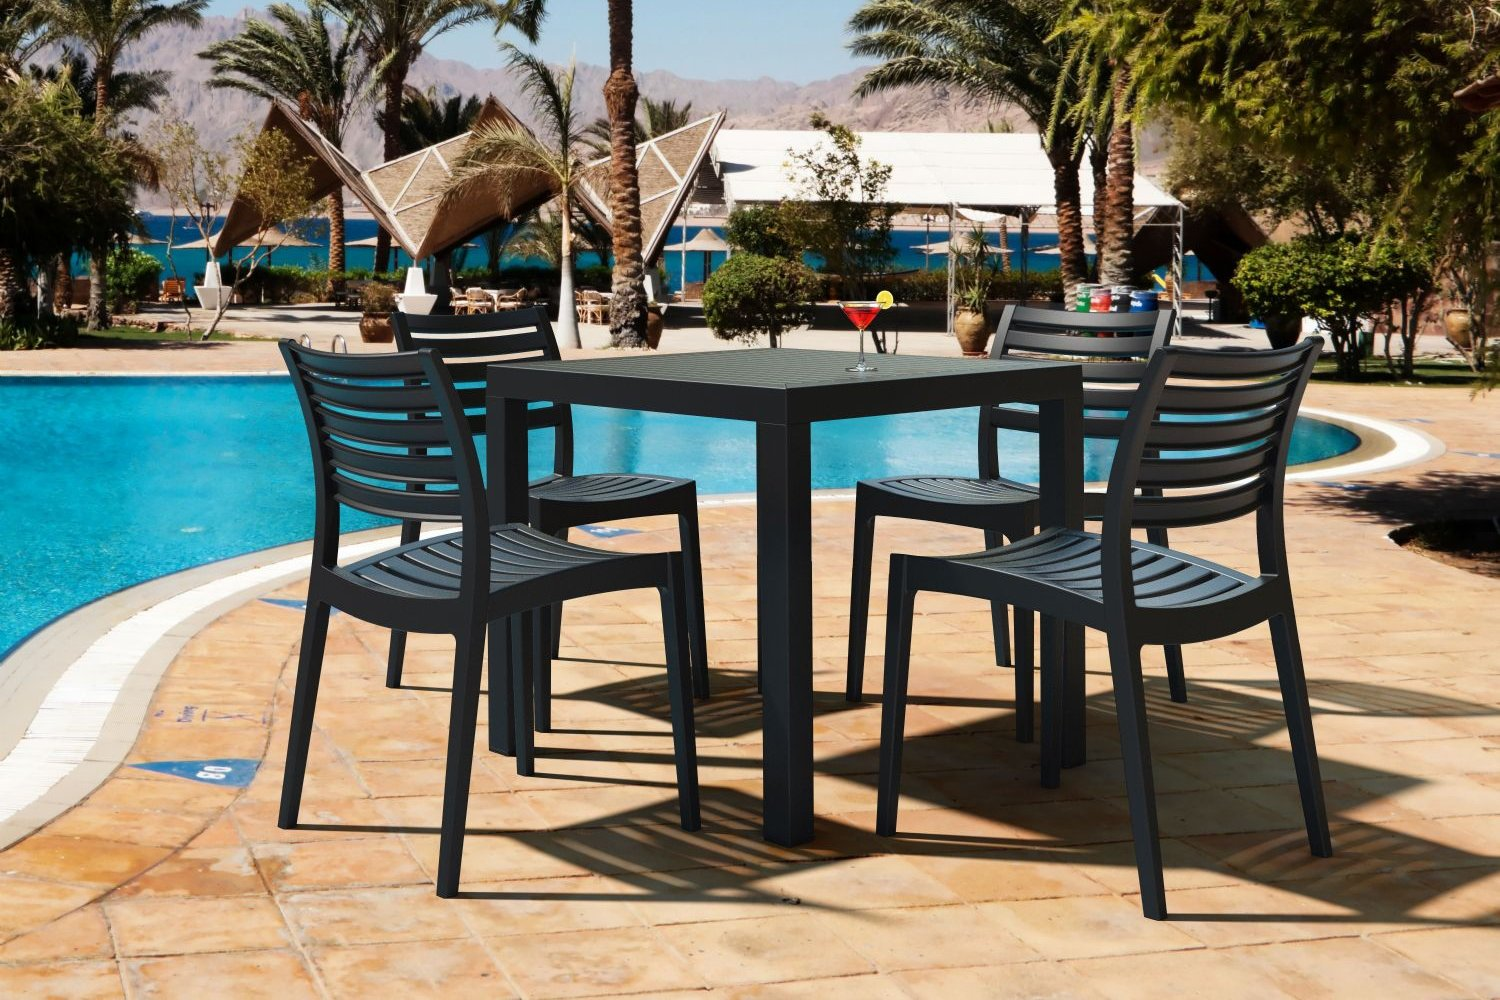 Ares Resin Square Outdoor Dining Set 5 Piece with Side Chairs Brown ISP1641S-BRW - 9